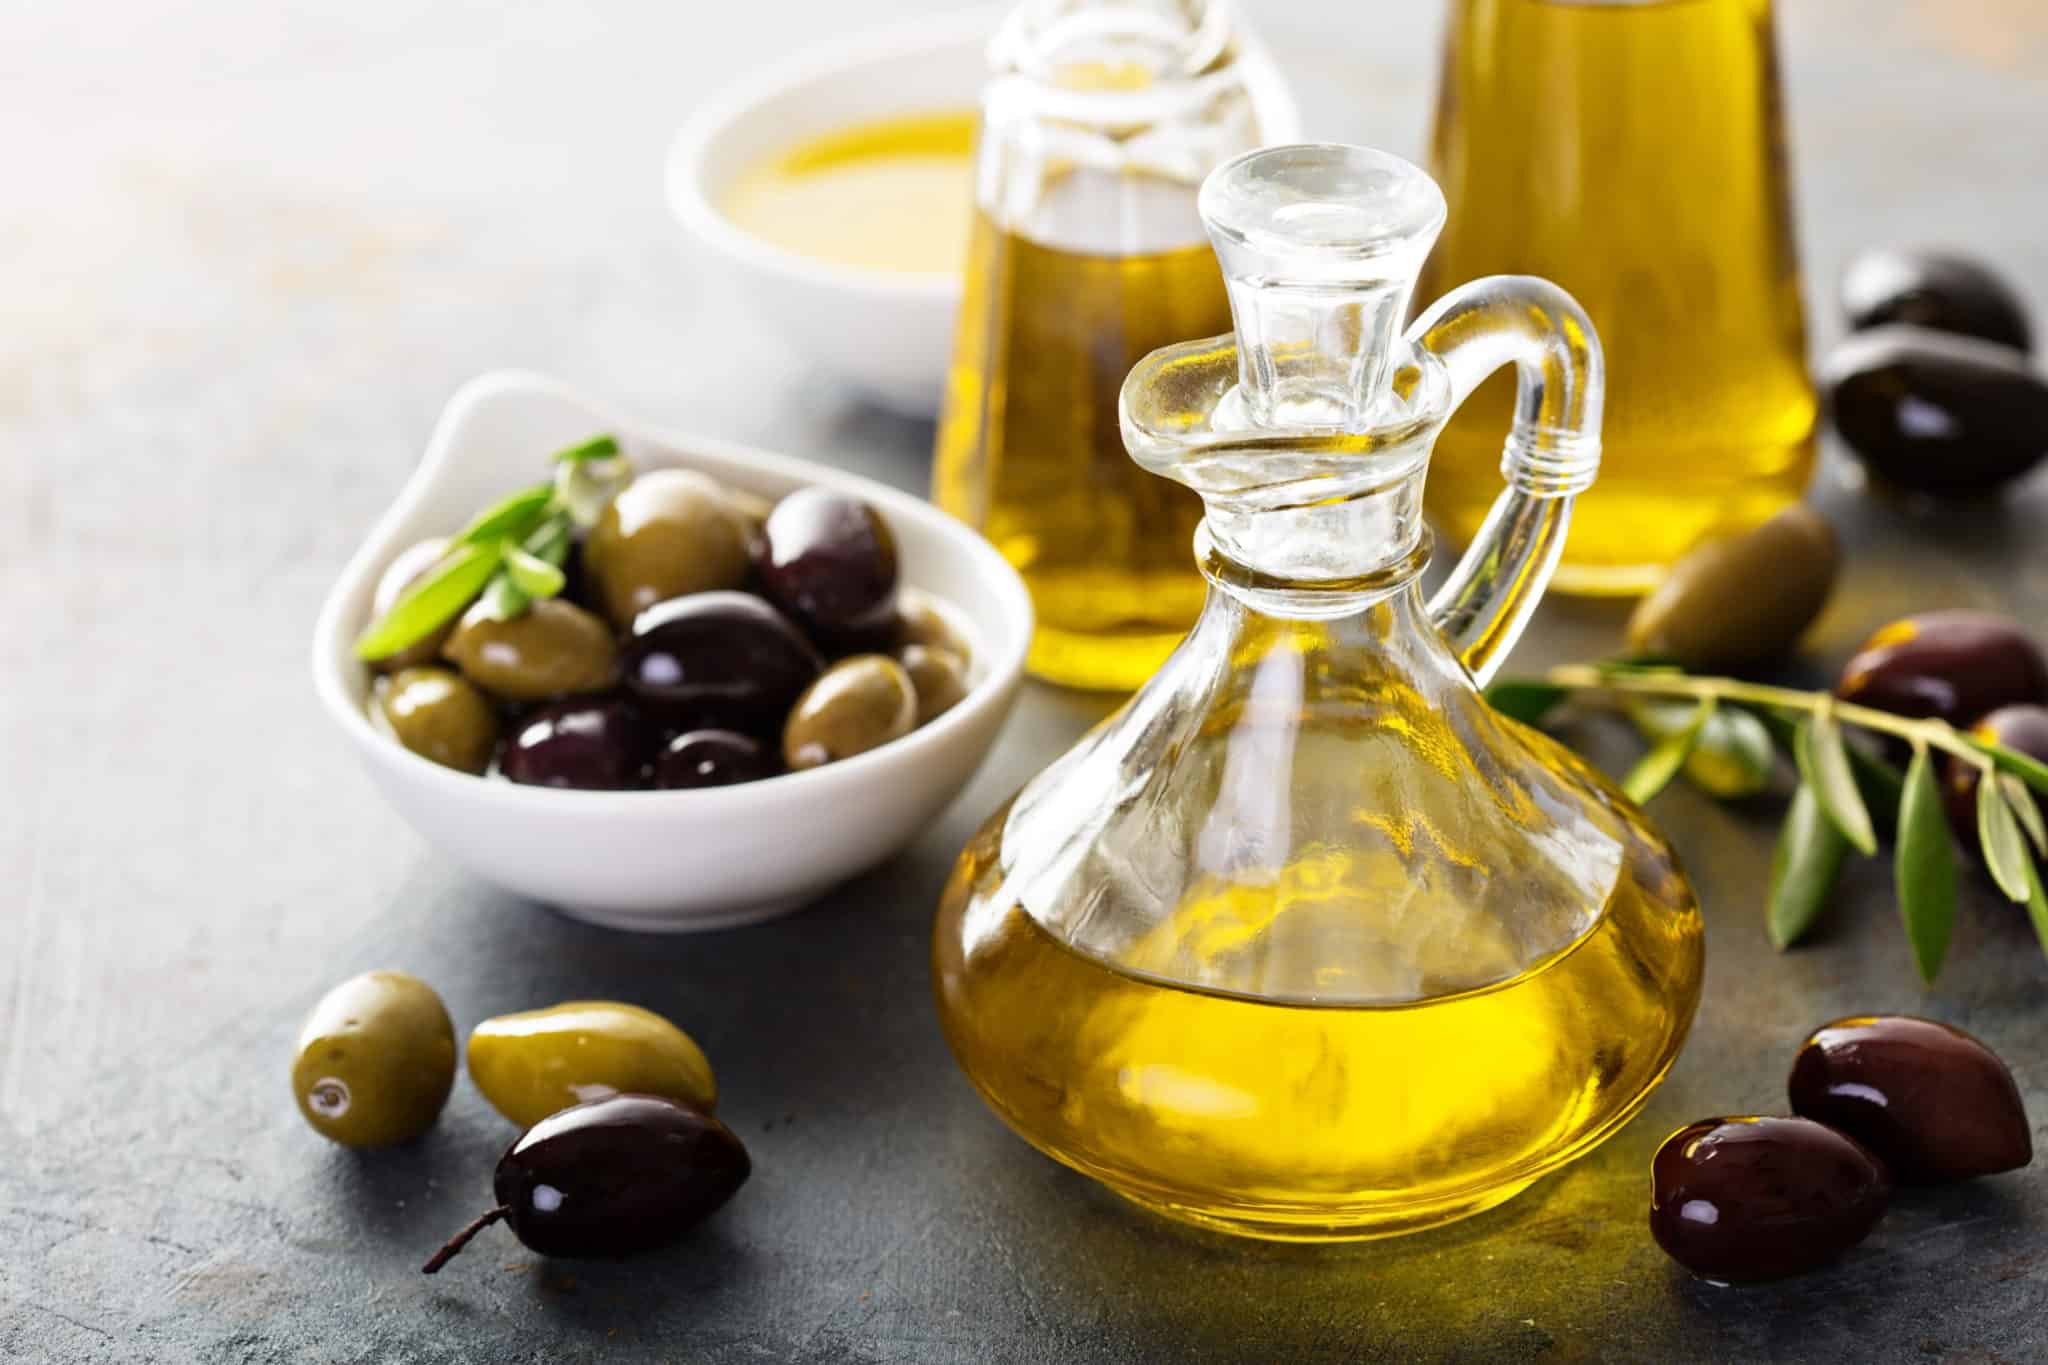 Olive oil in bottle with olives in bowl